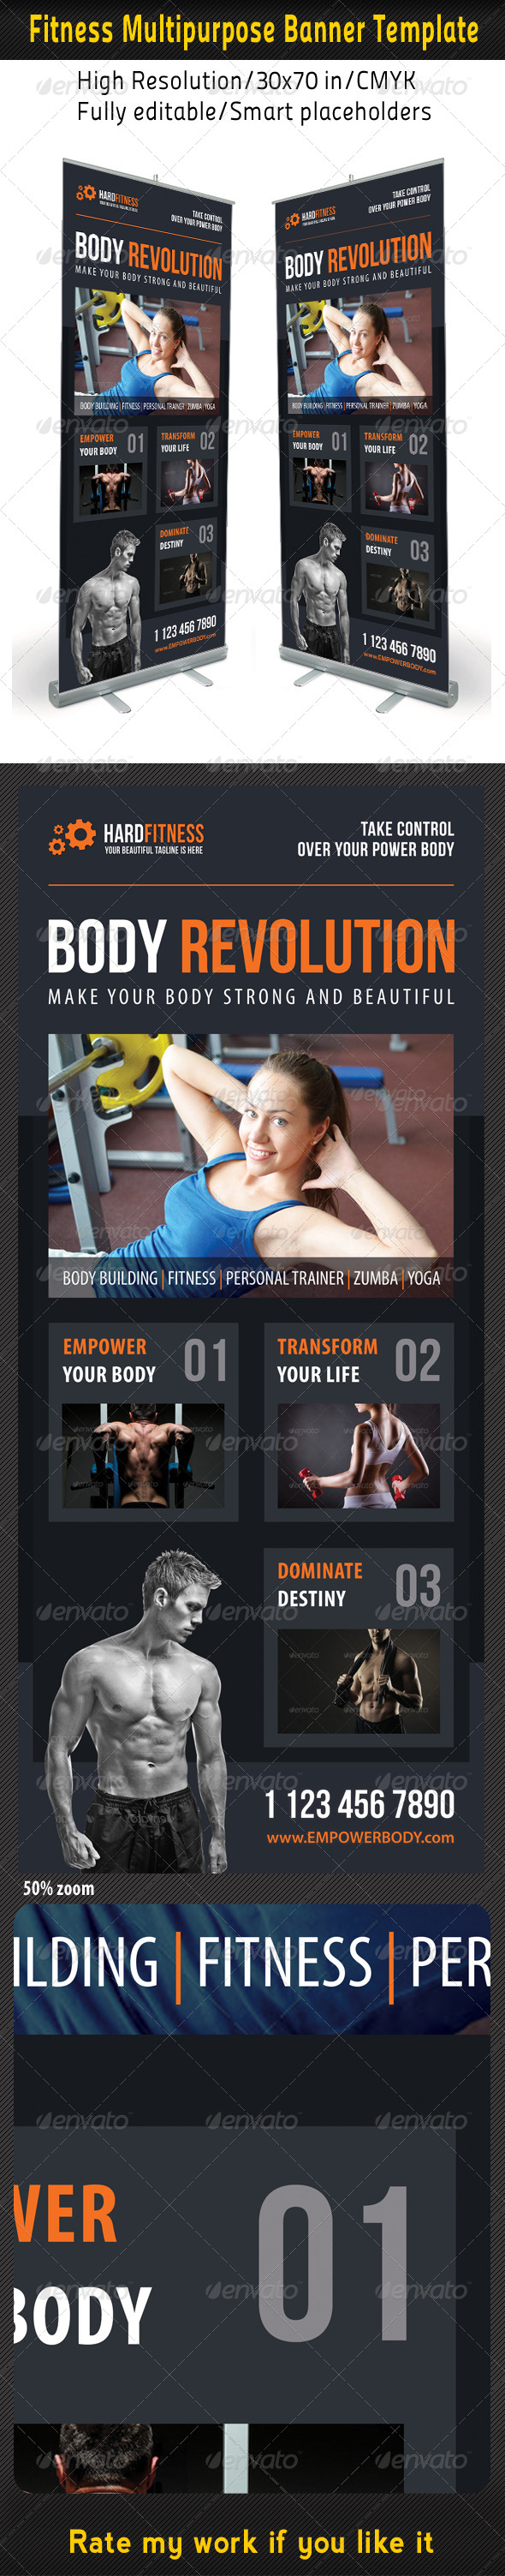 Fitness Multipurpose Banner Template 15